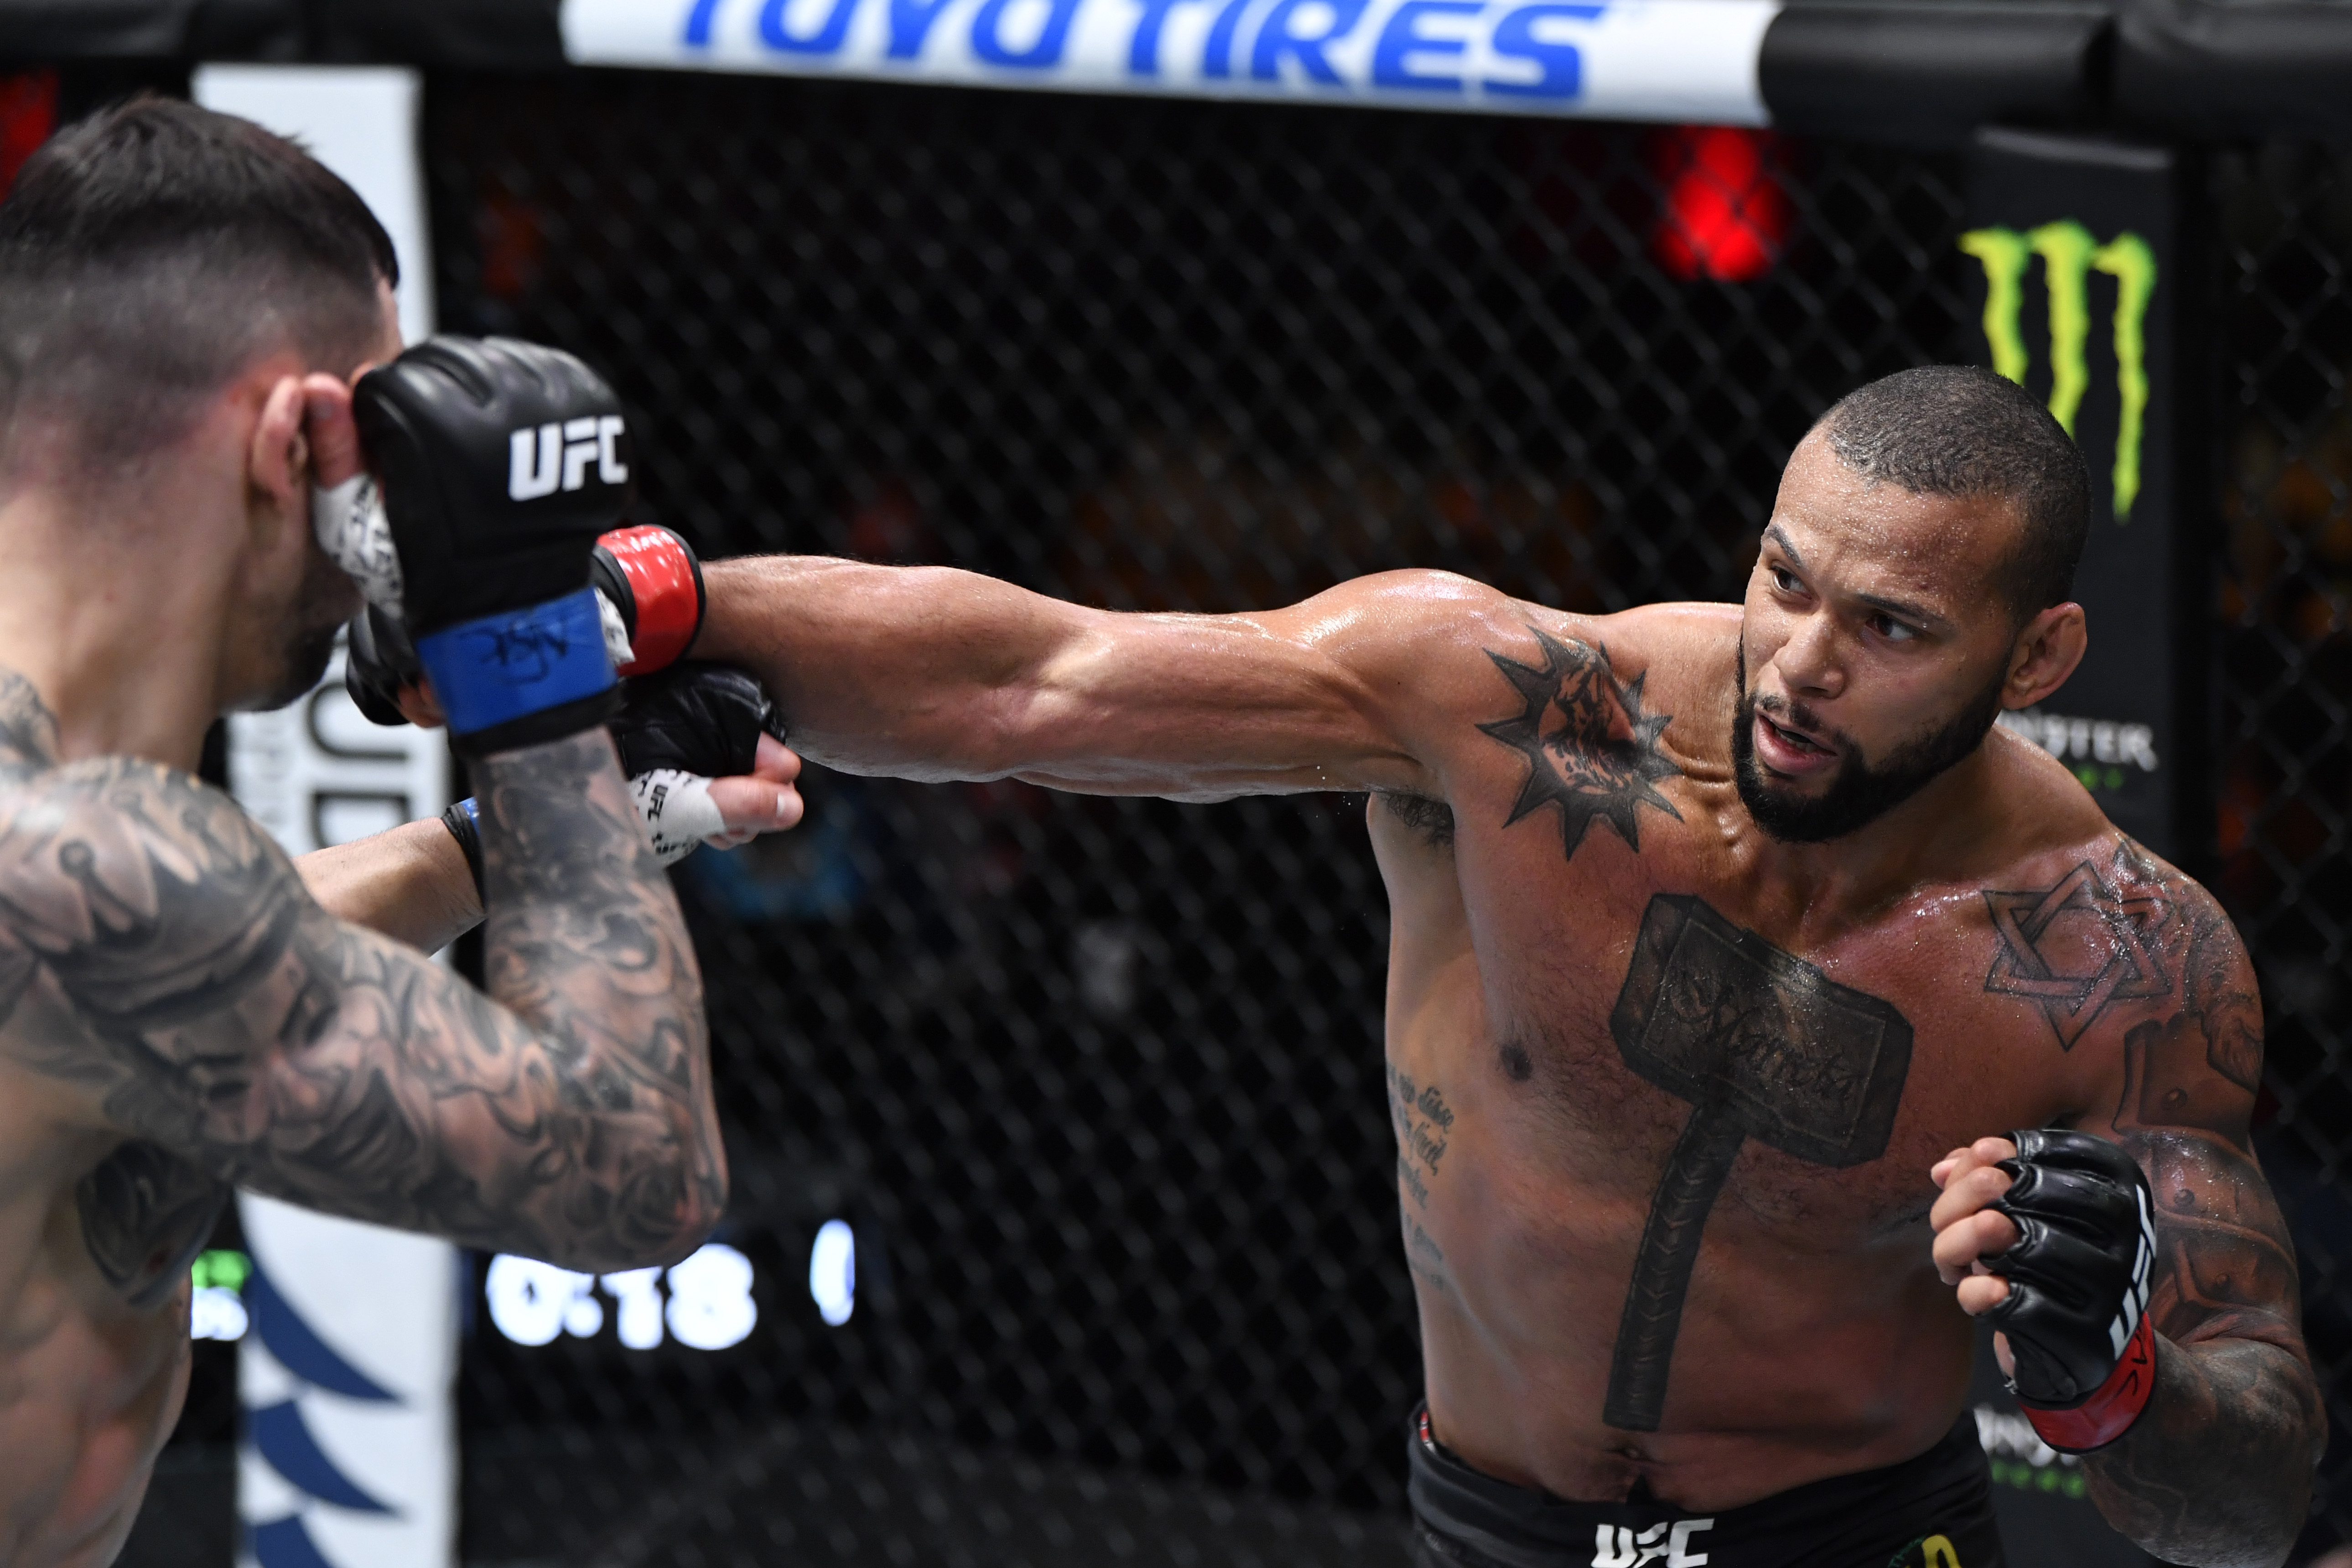 Thiago Santos of Brazil punches Aleksandar Rakic of Austria in their light heavyweight fight during the UFC 259 event at UFC APEX on March 06, 2021 in Las Vegas, Nevada